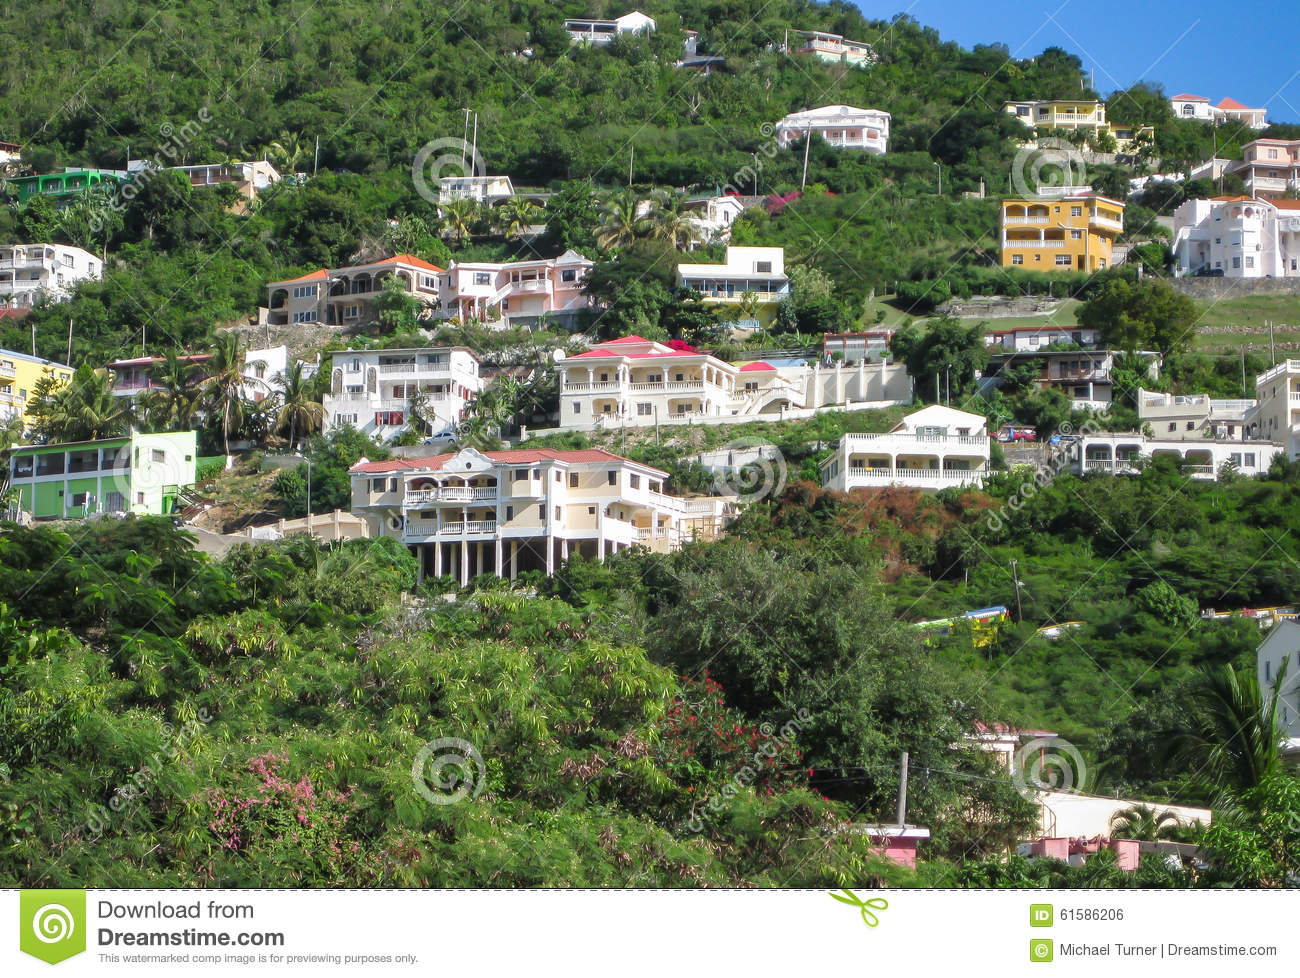 Grand case st martin december 28 2009 homes are nestled along the hillside in the french town of grand case on this small caribbean island